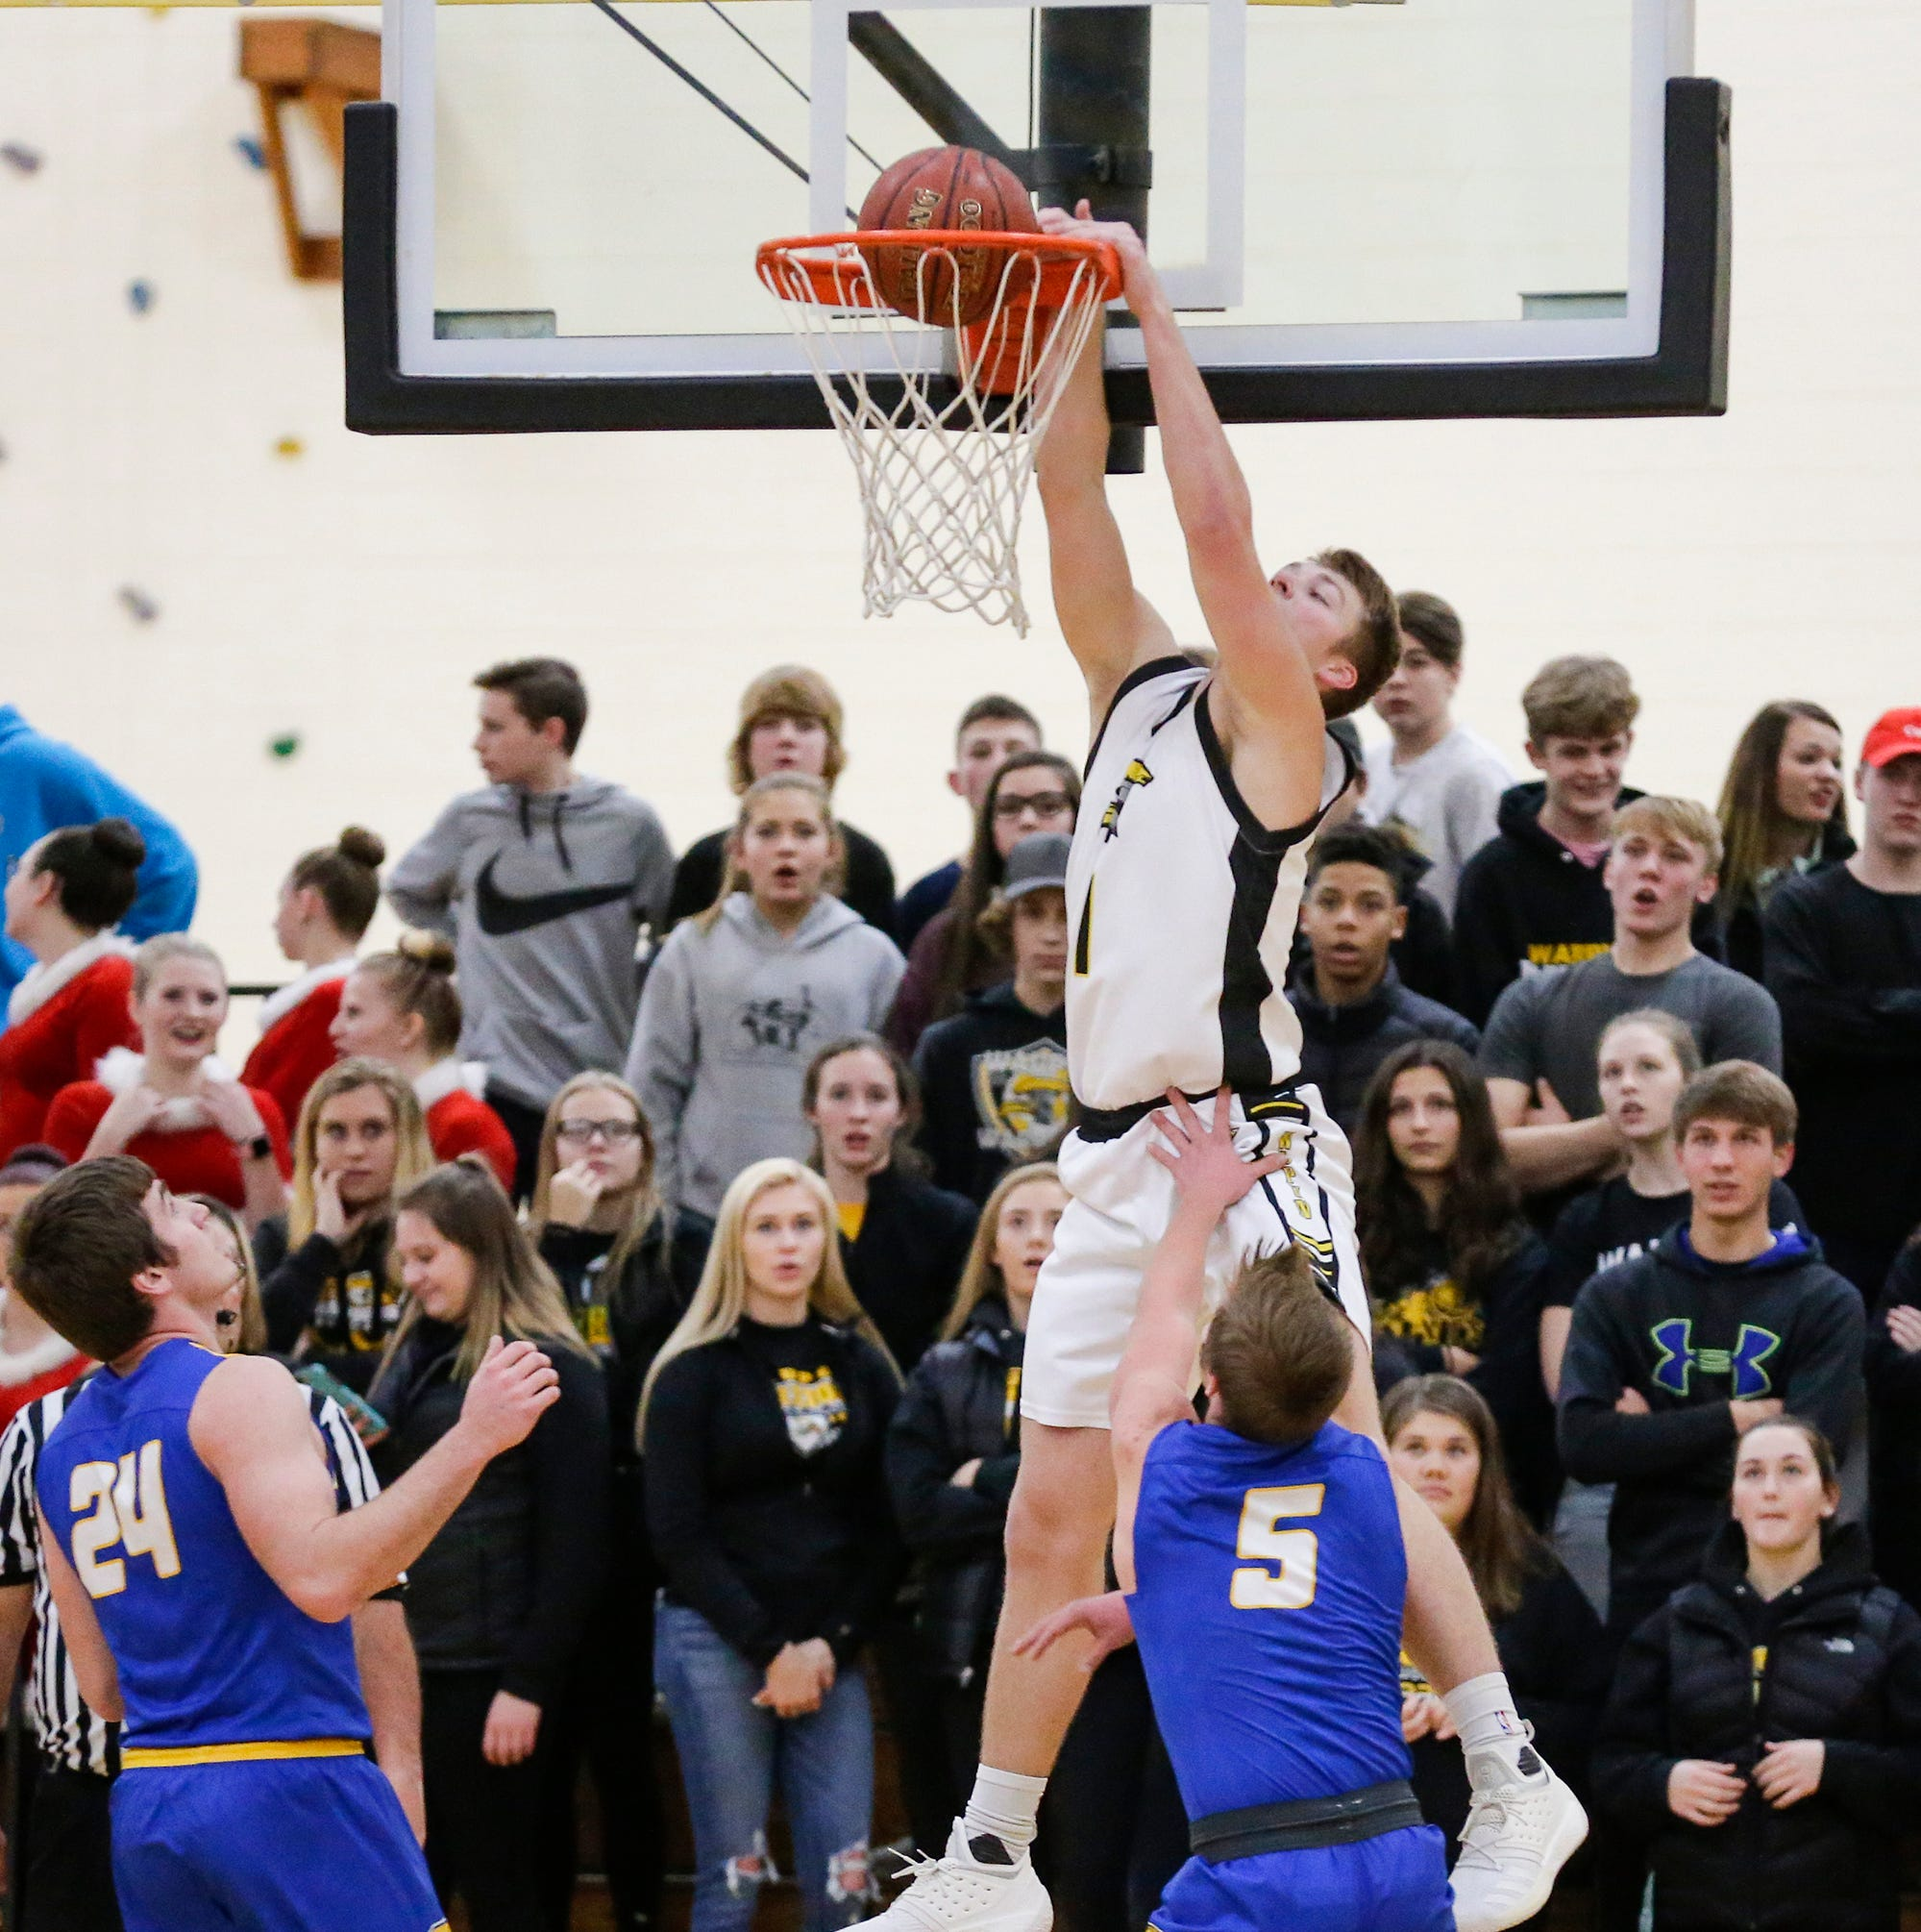 High school: Waupun boys and Laconia girls undefeated early in the season